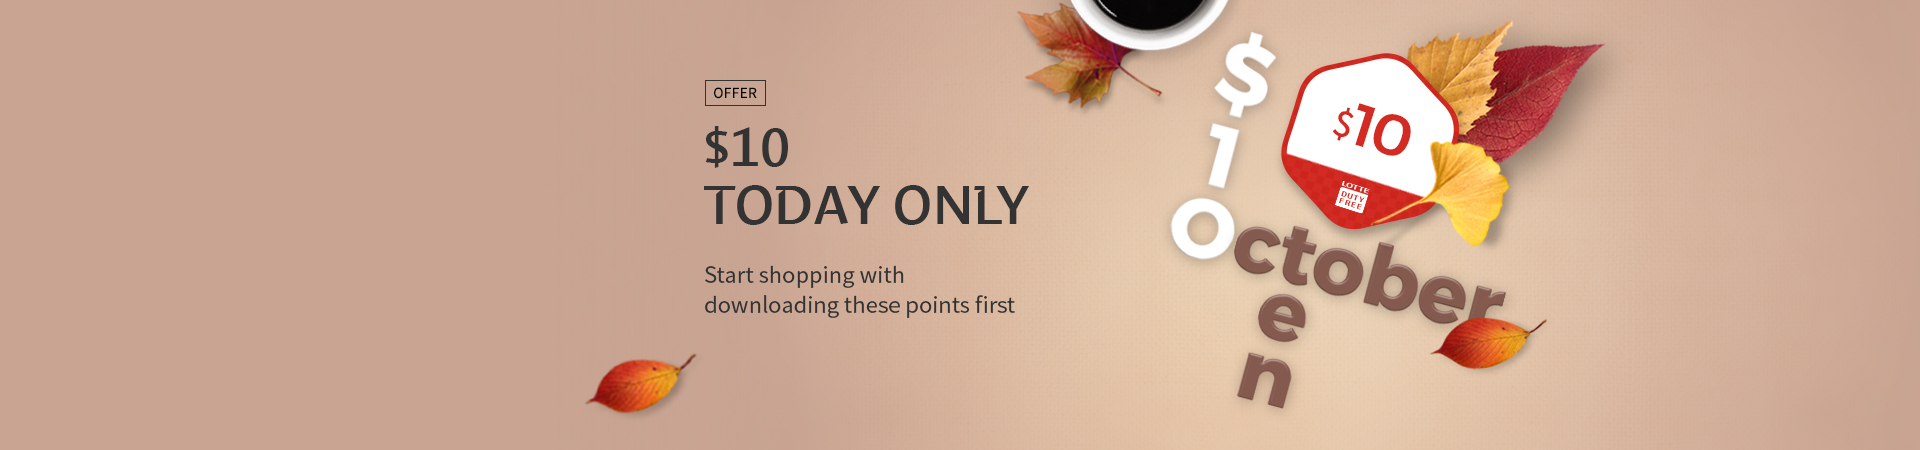 10/8 Today Only! $10 Reward points